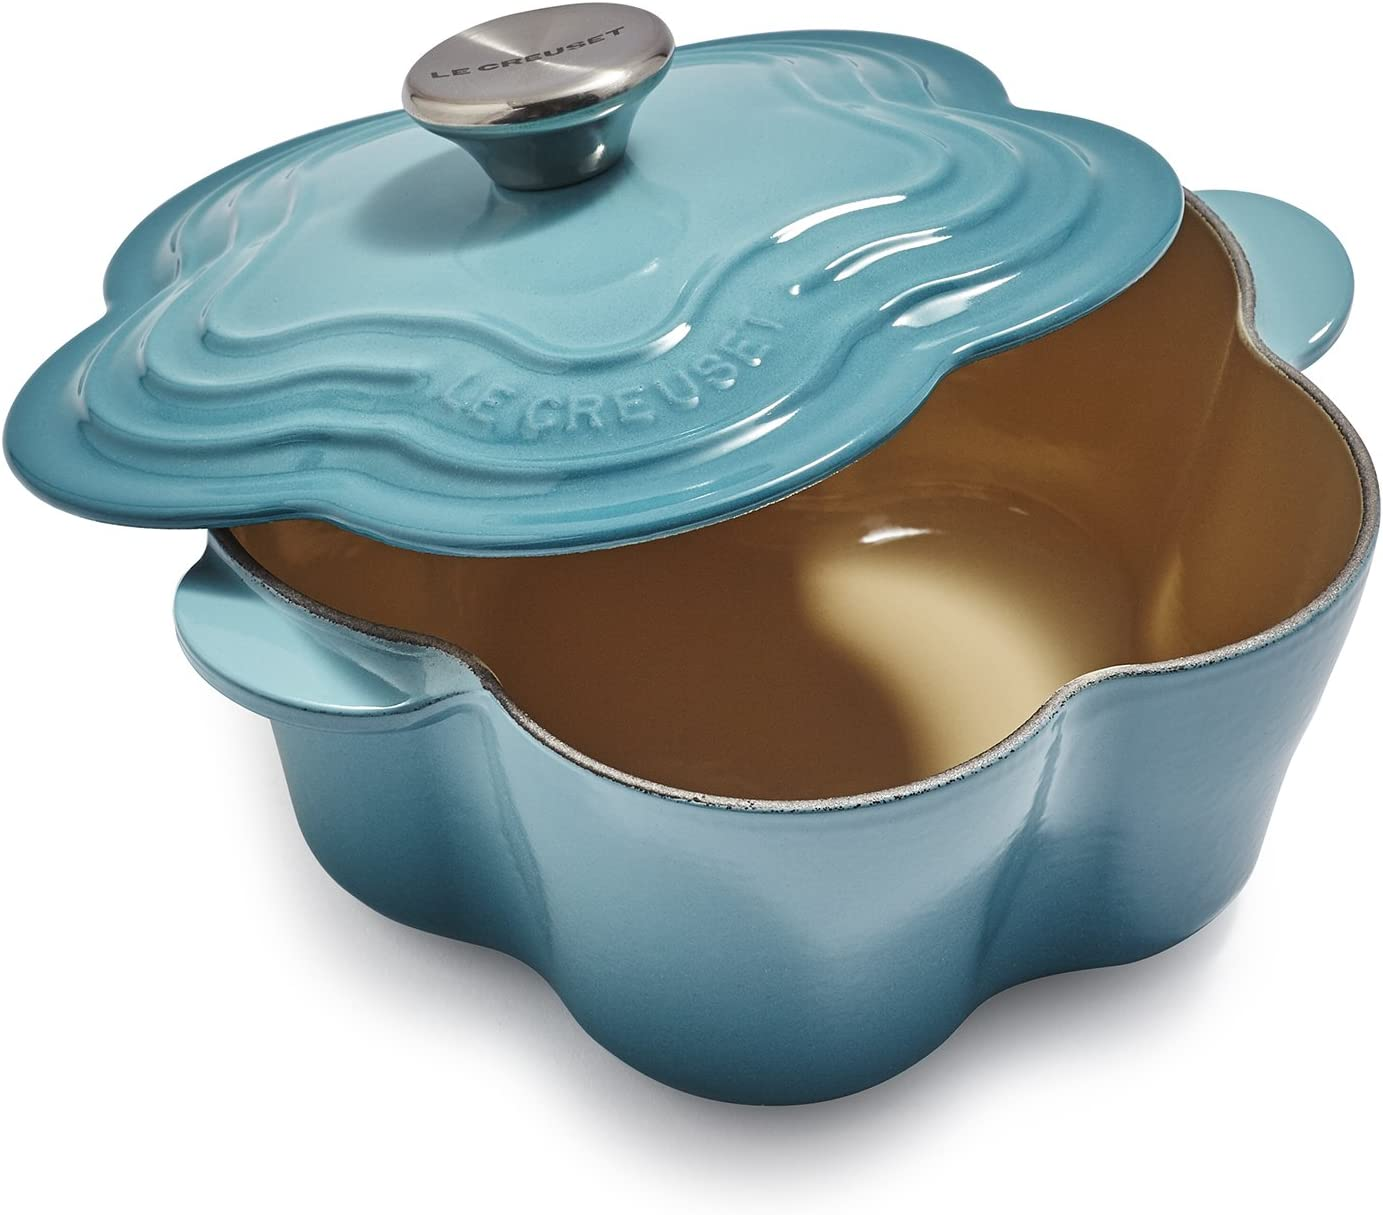 Le Creuset Enameled Cast Iron Stainless Selling and selling Cocotte With Flower Credence Stee